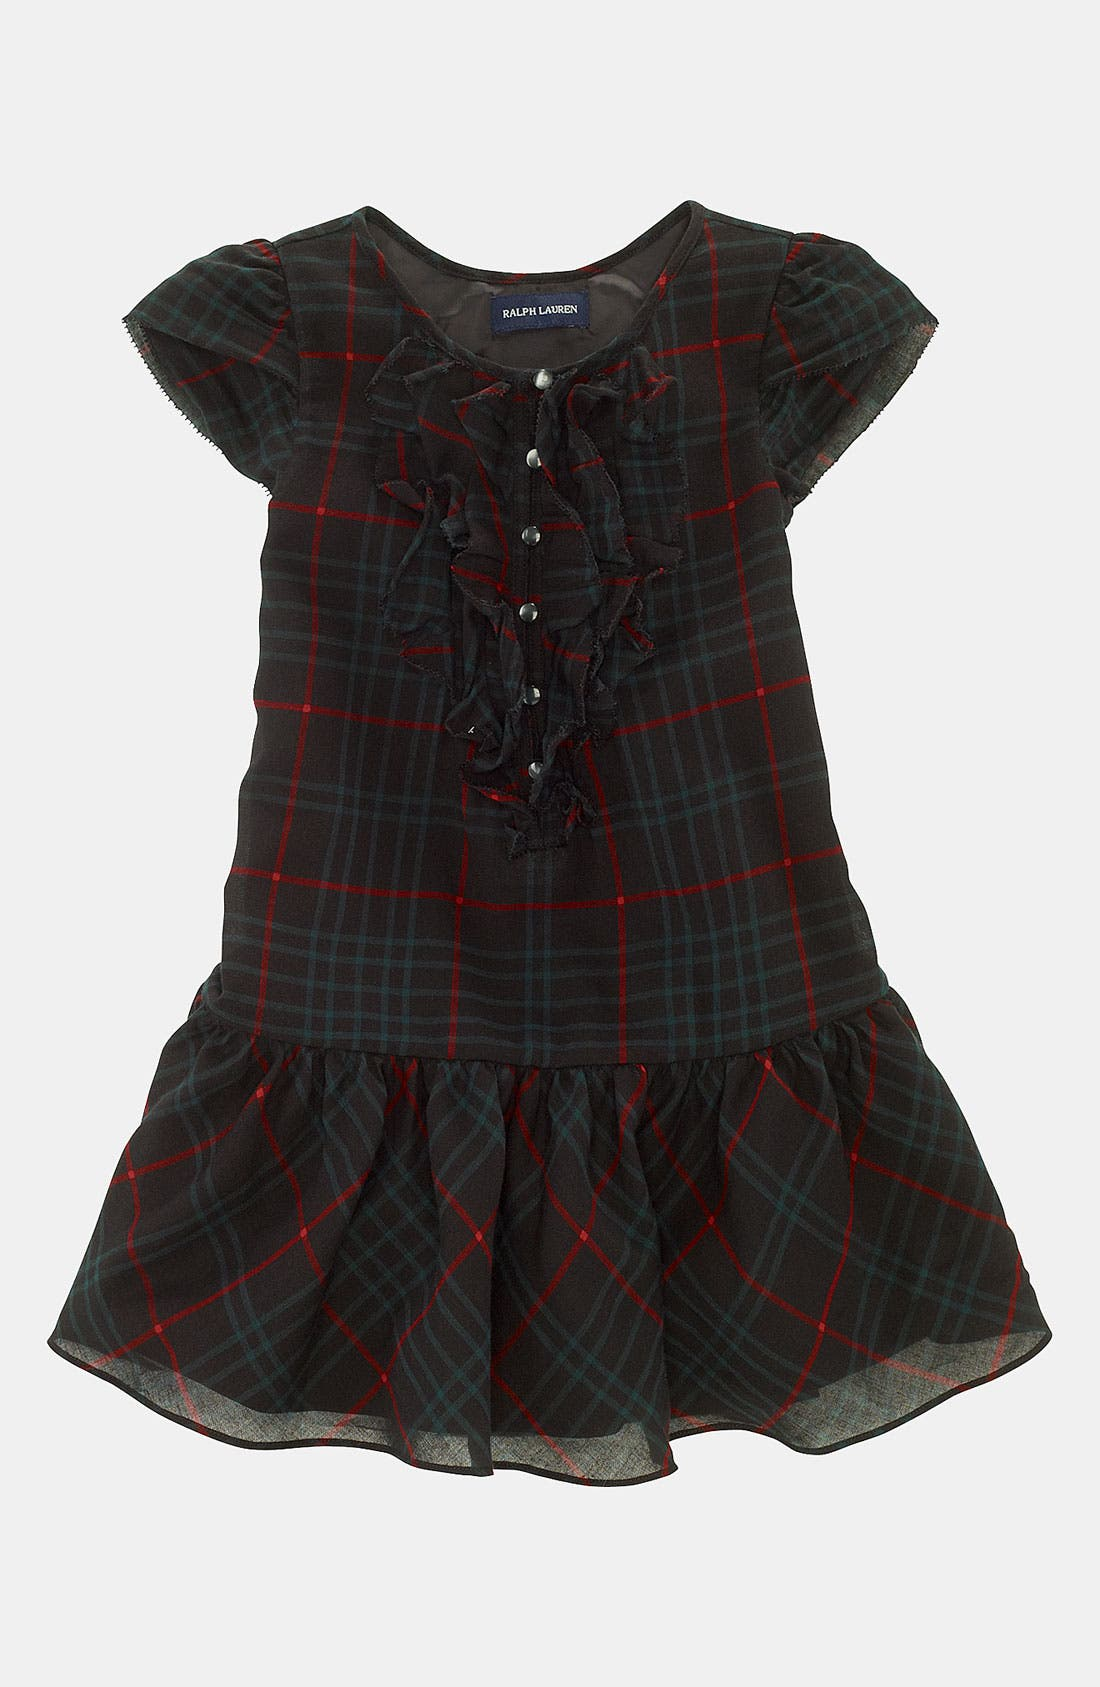 Alternate Image 1 Selected - Ralph Lauren Plaid Dress (Toddler)